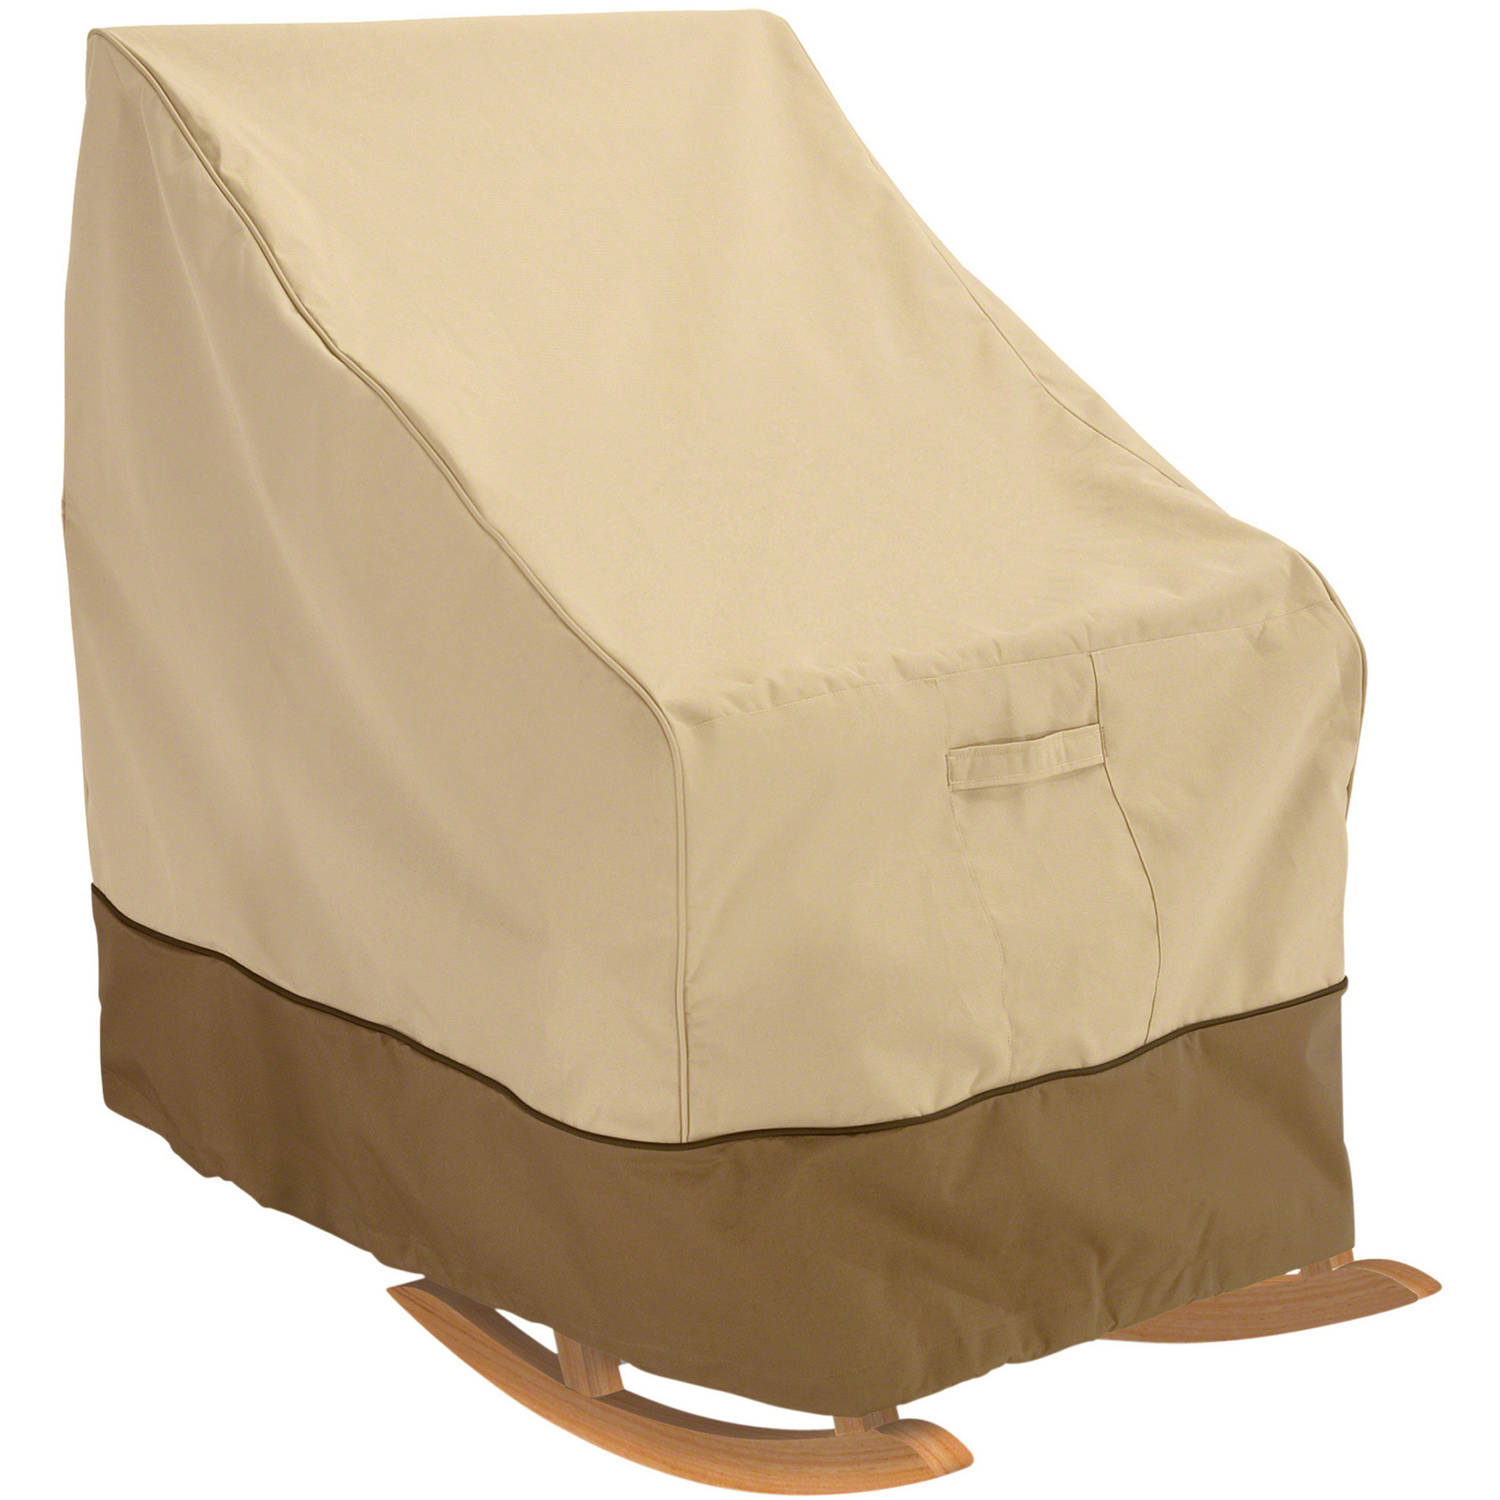 Classic Accessories Veranda Patio Rocking Chair Cover Durable